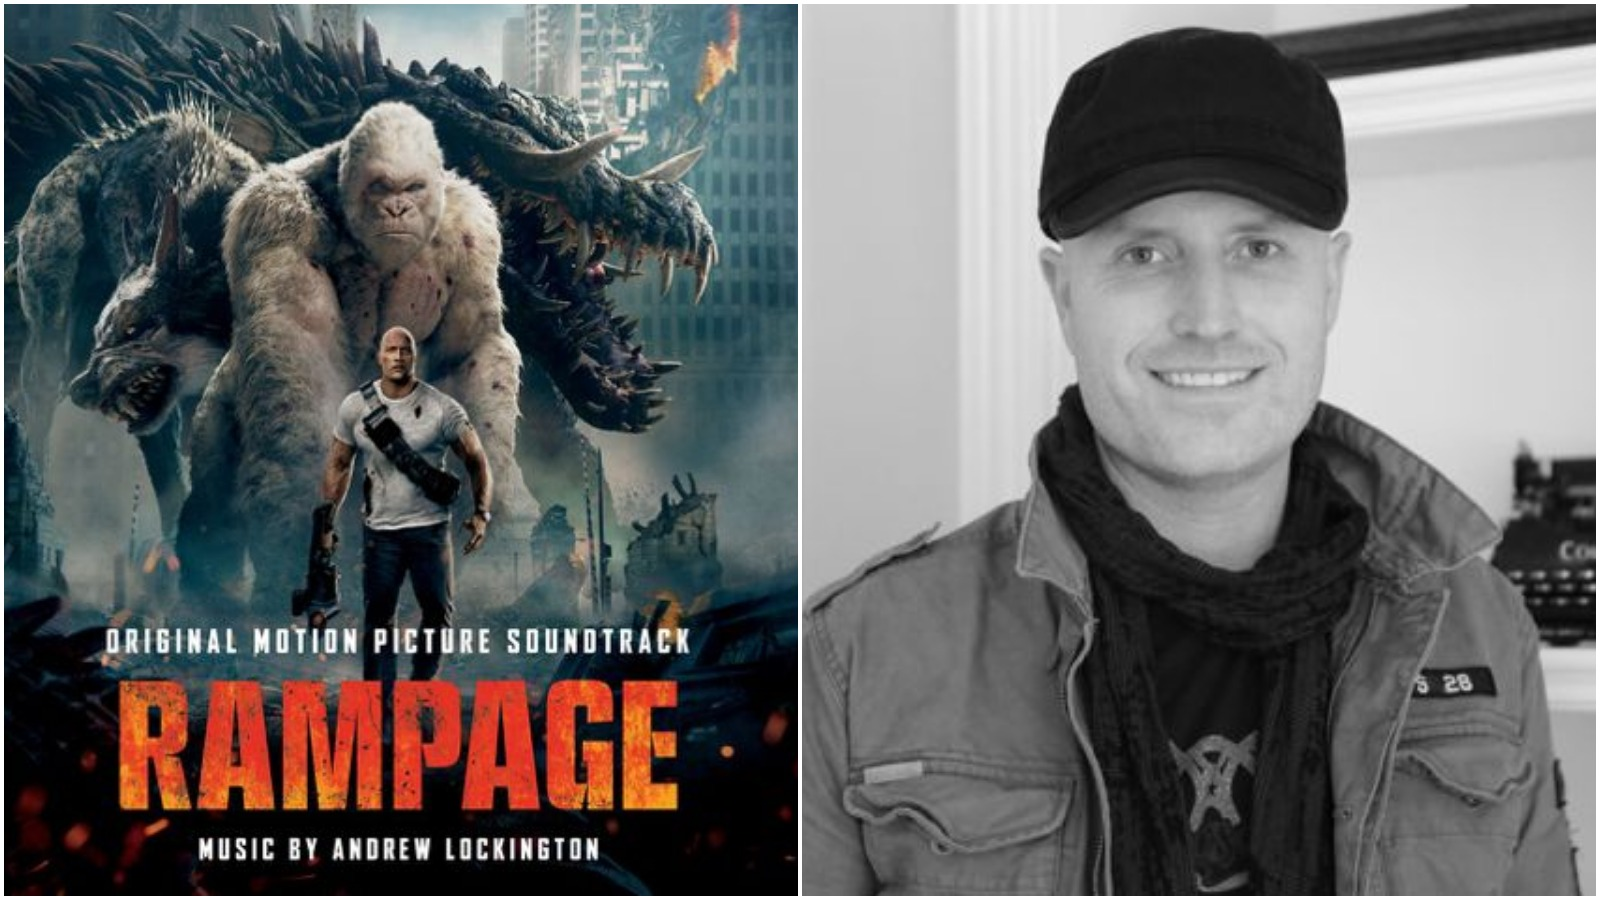 Rampage Composer Andrew Lockington on Scoring Monsters and The Rock